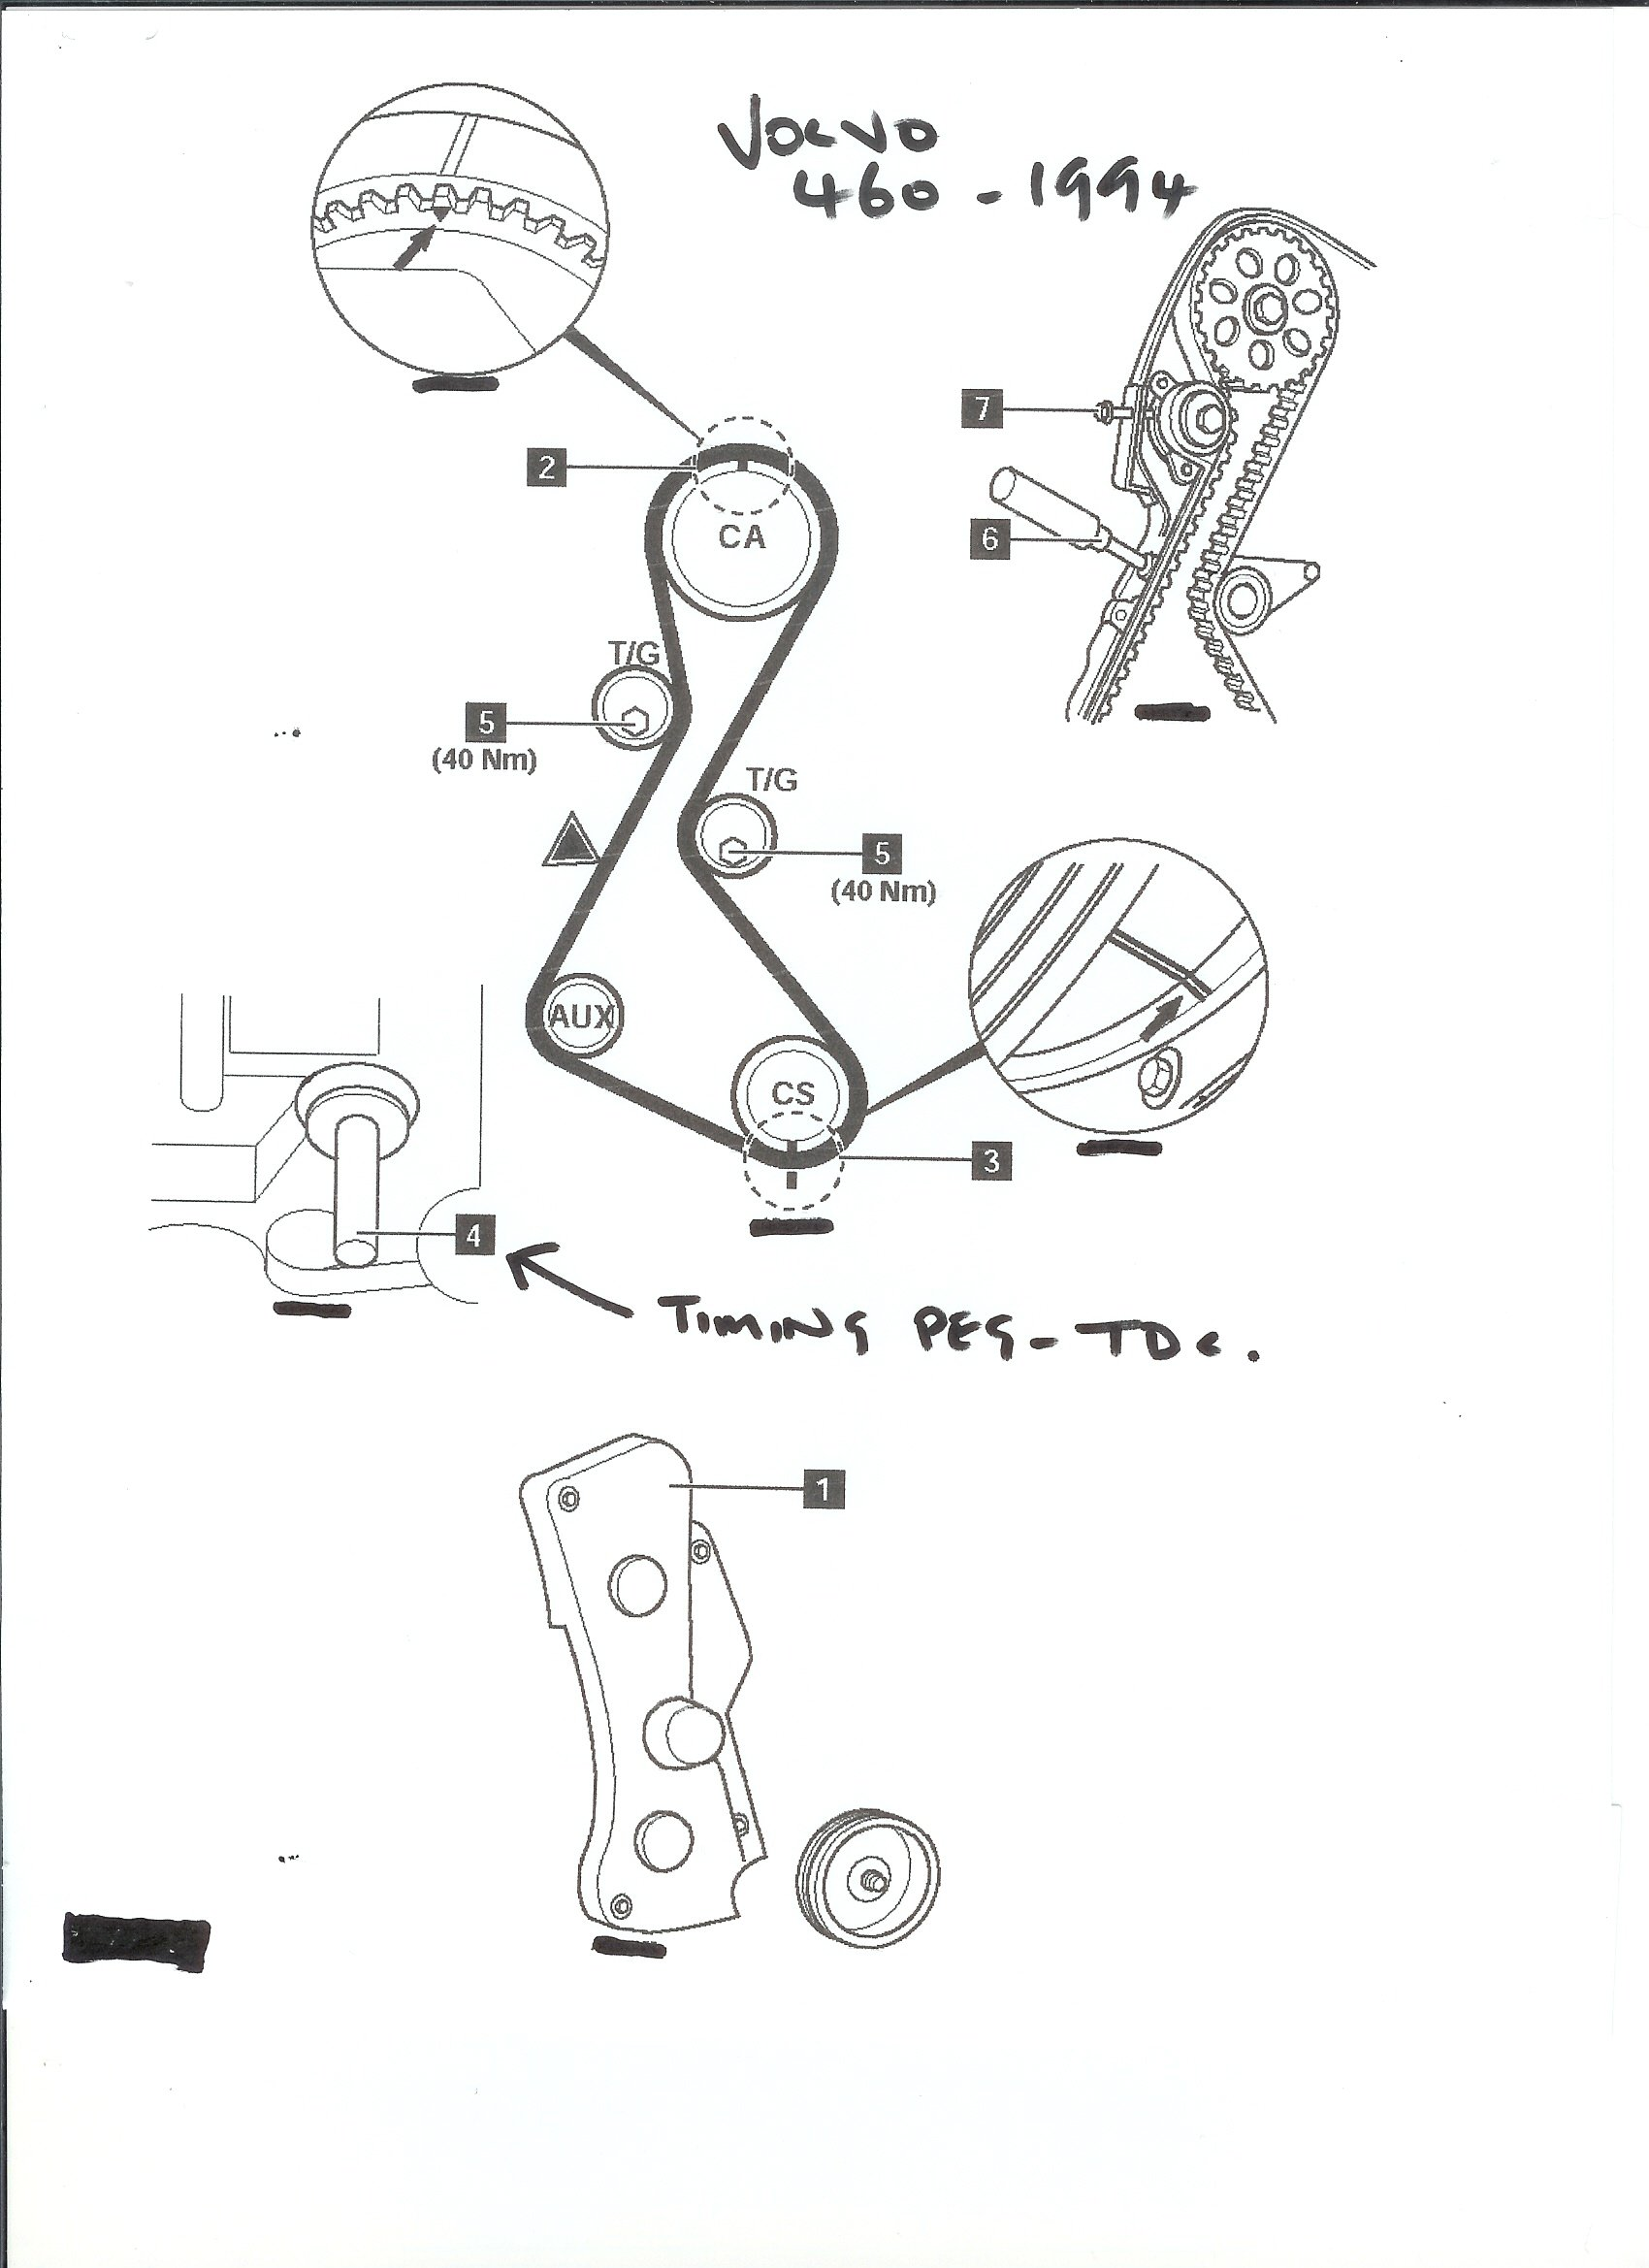 Ford 460 Timing Chain Diagram Electrical Wiring A Engine Circuit Symbols U2022 429 Marks